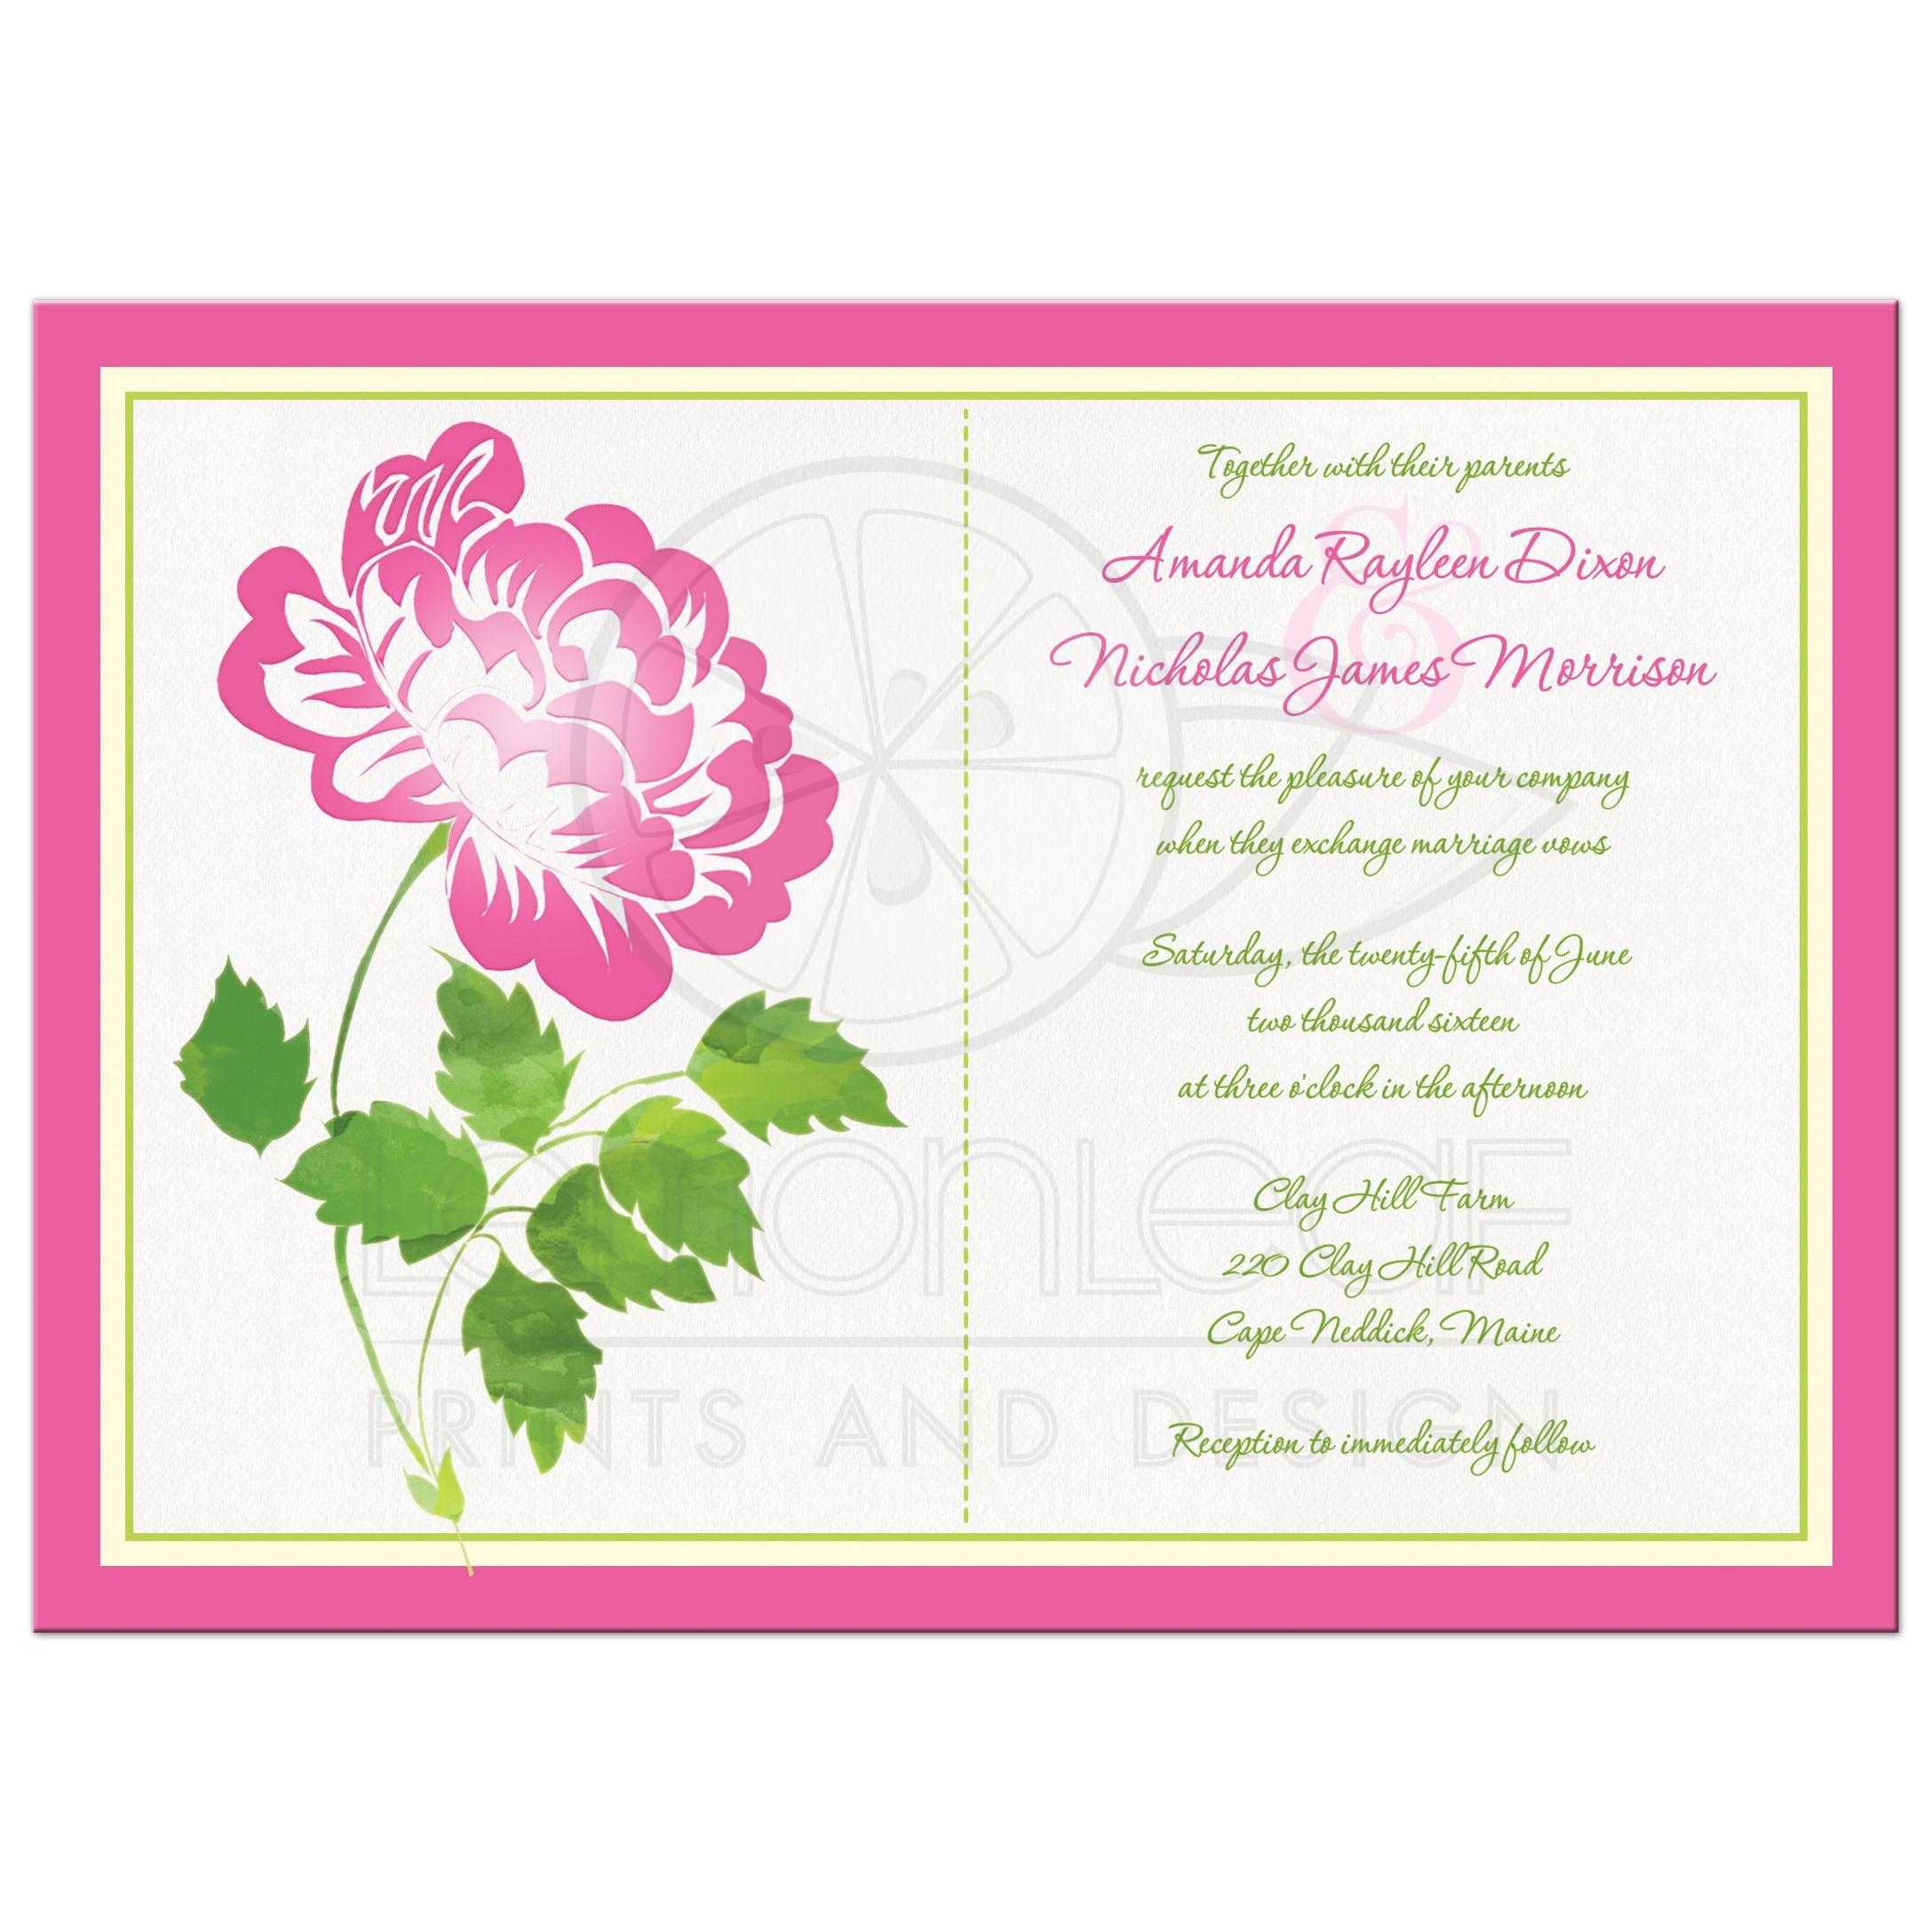 Wedding Invitation Pink Green Ivory And White Floral